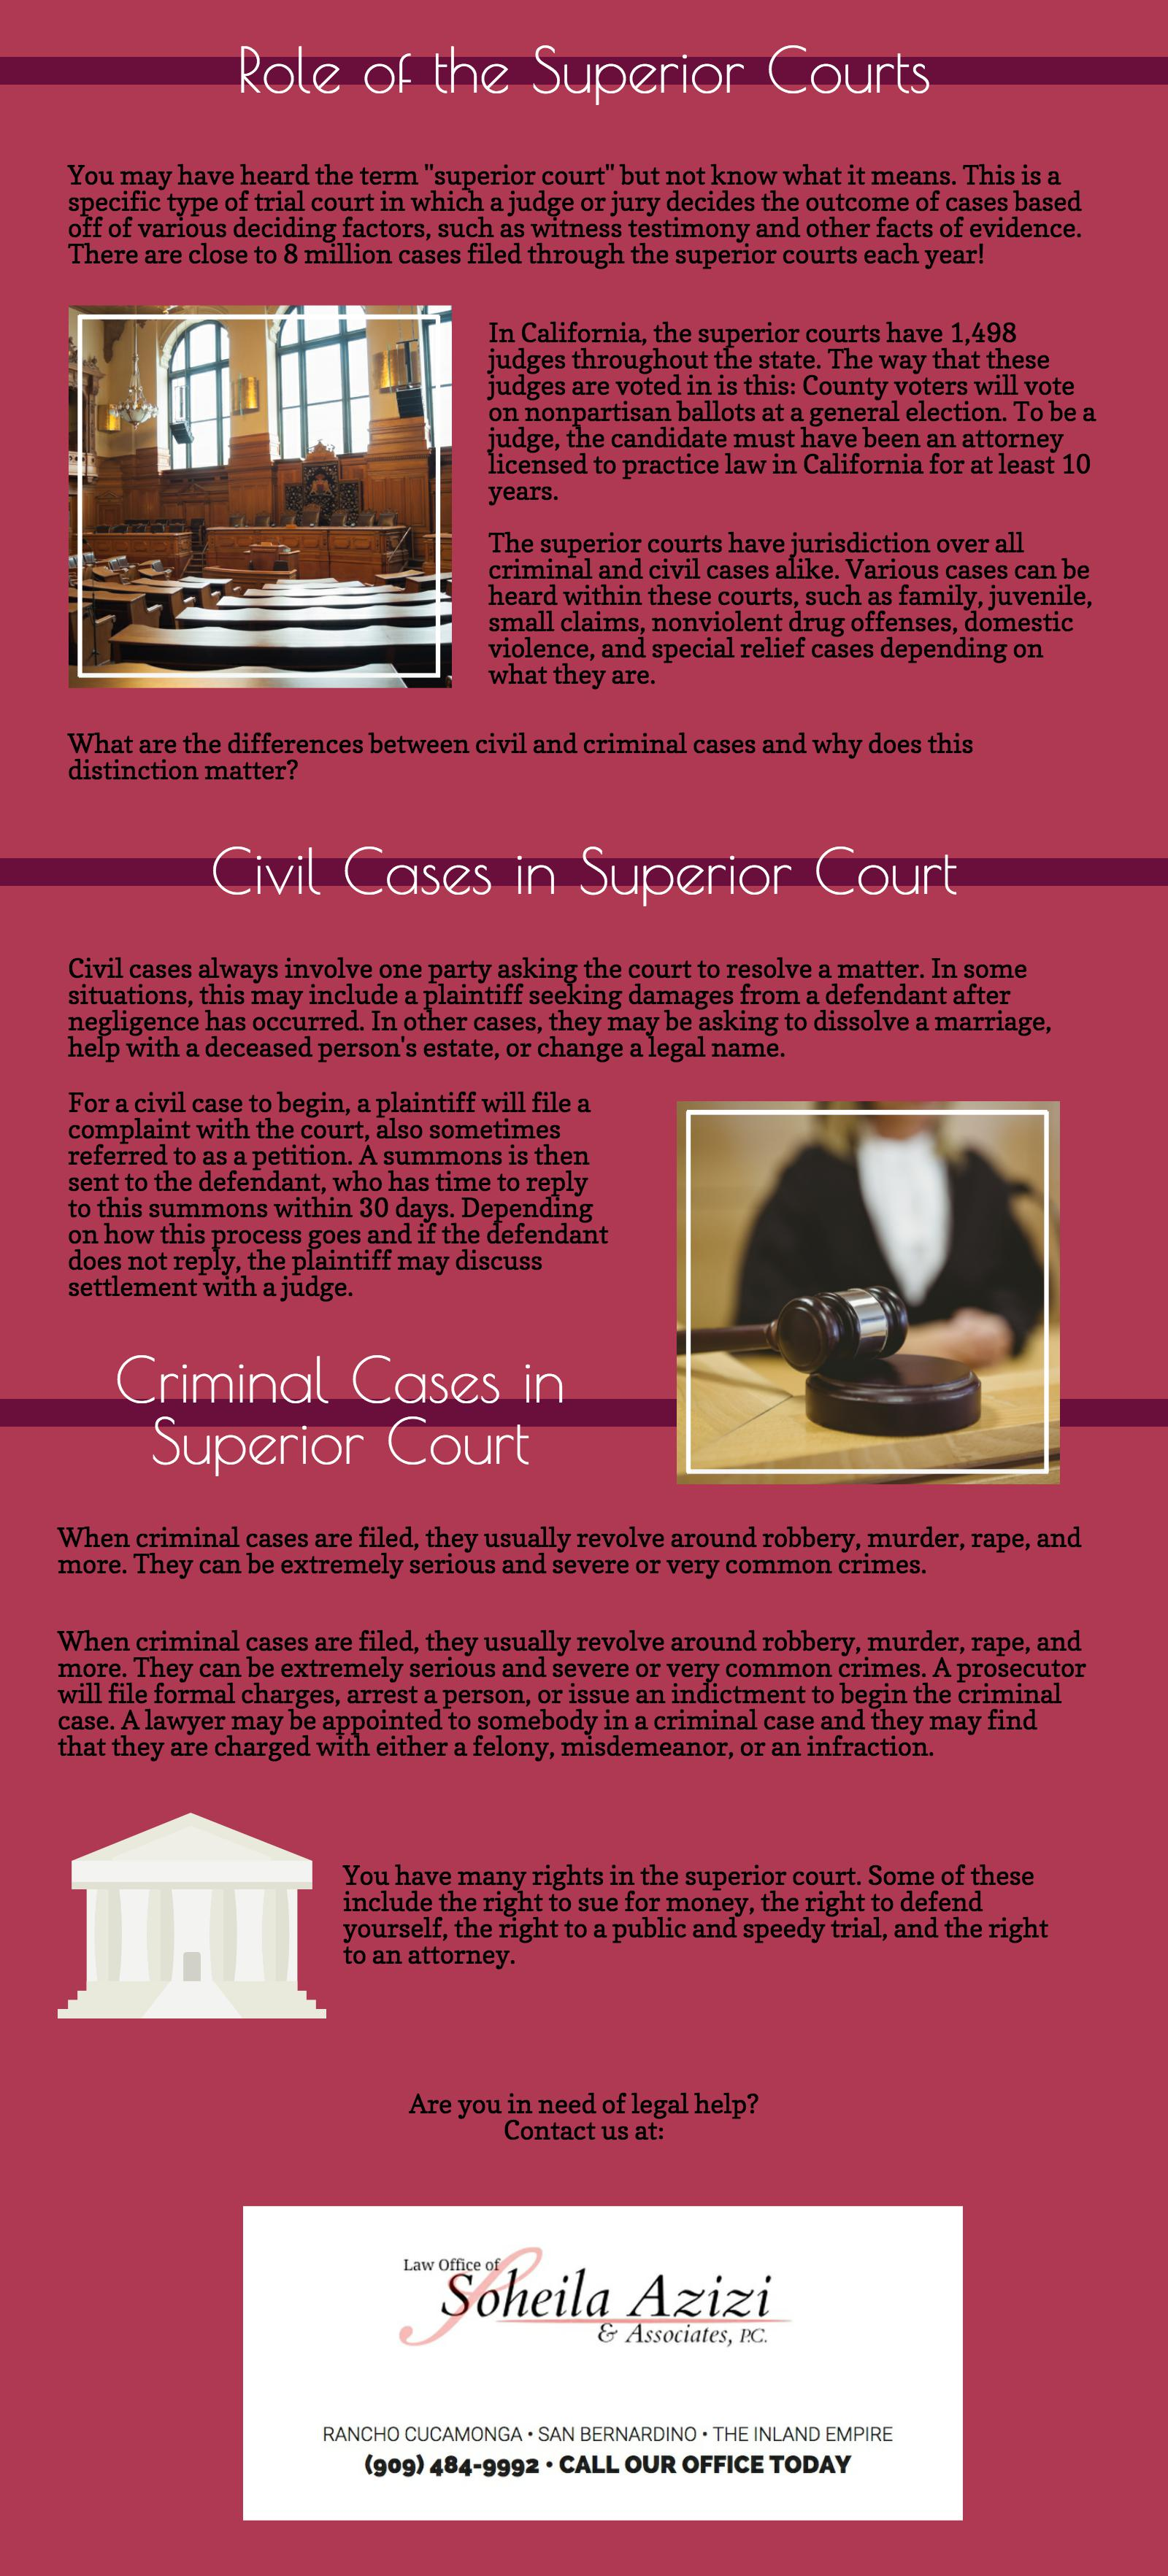 identify the role of courts in criminal justice today Identify the role of courts in criminal justice today the role of the courts in criminal justice today depends on two areas, oversight, and adjudication these key areas ensure protection to public safety and the efficient operation of the.